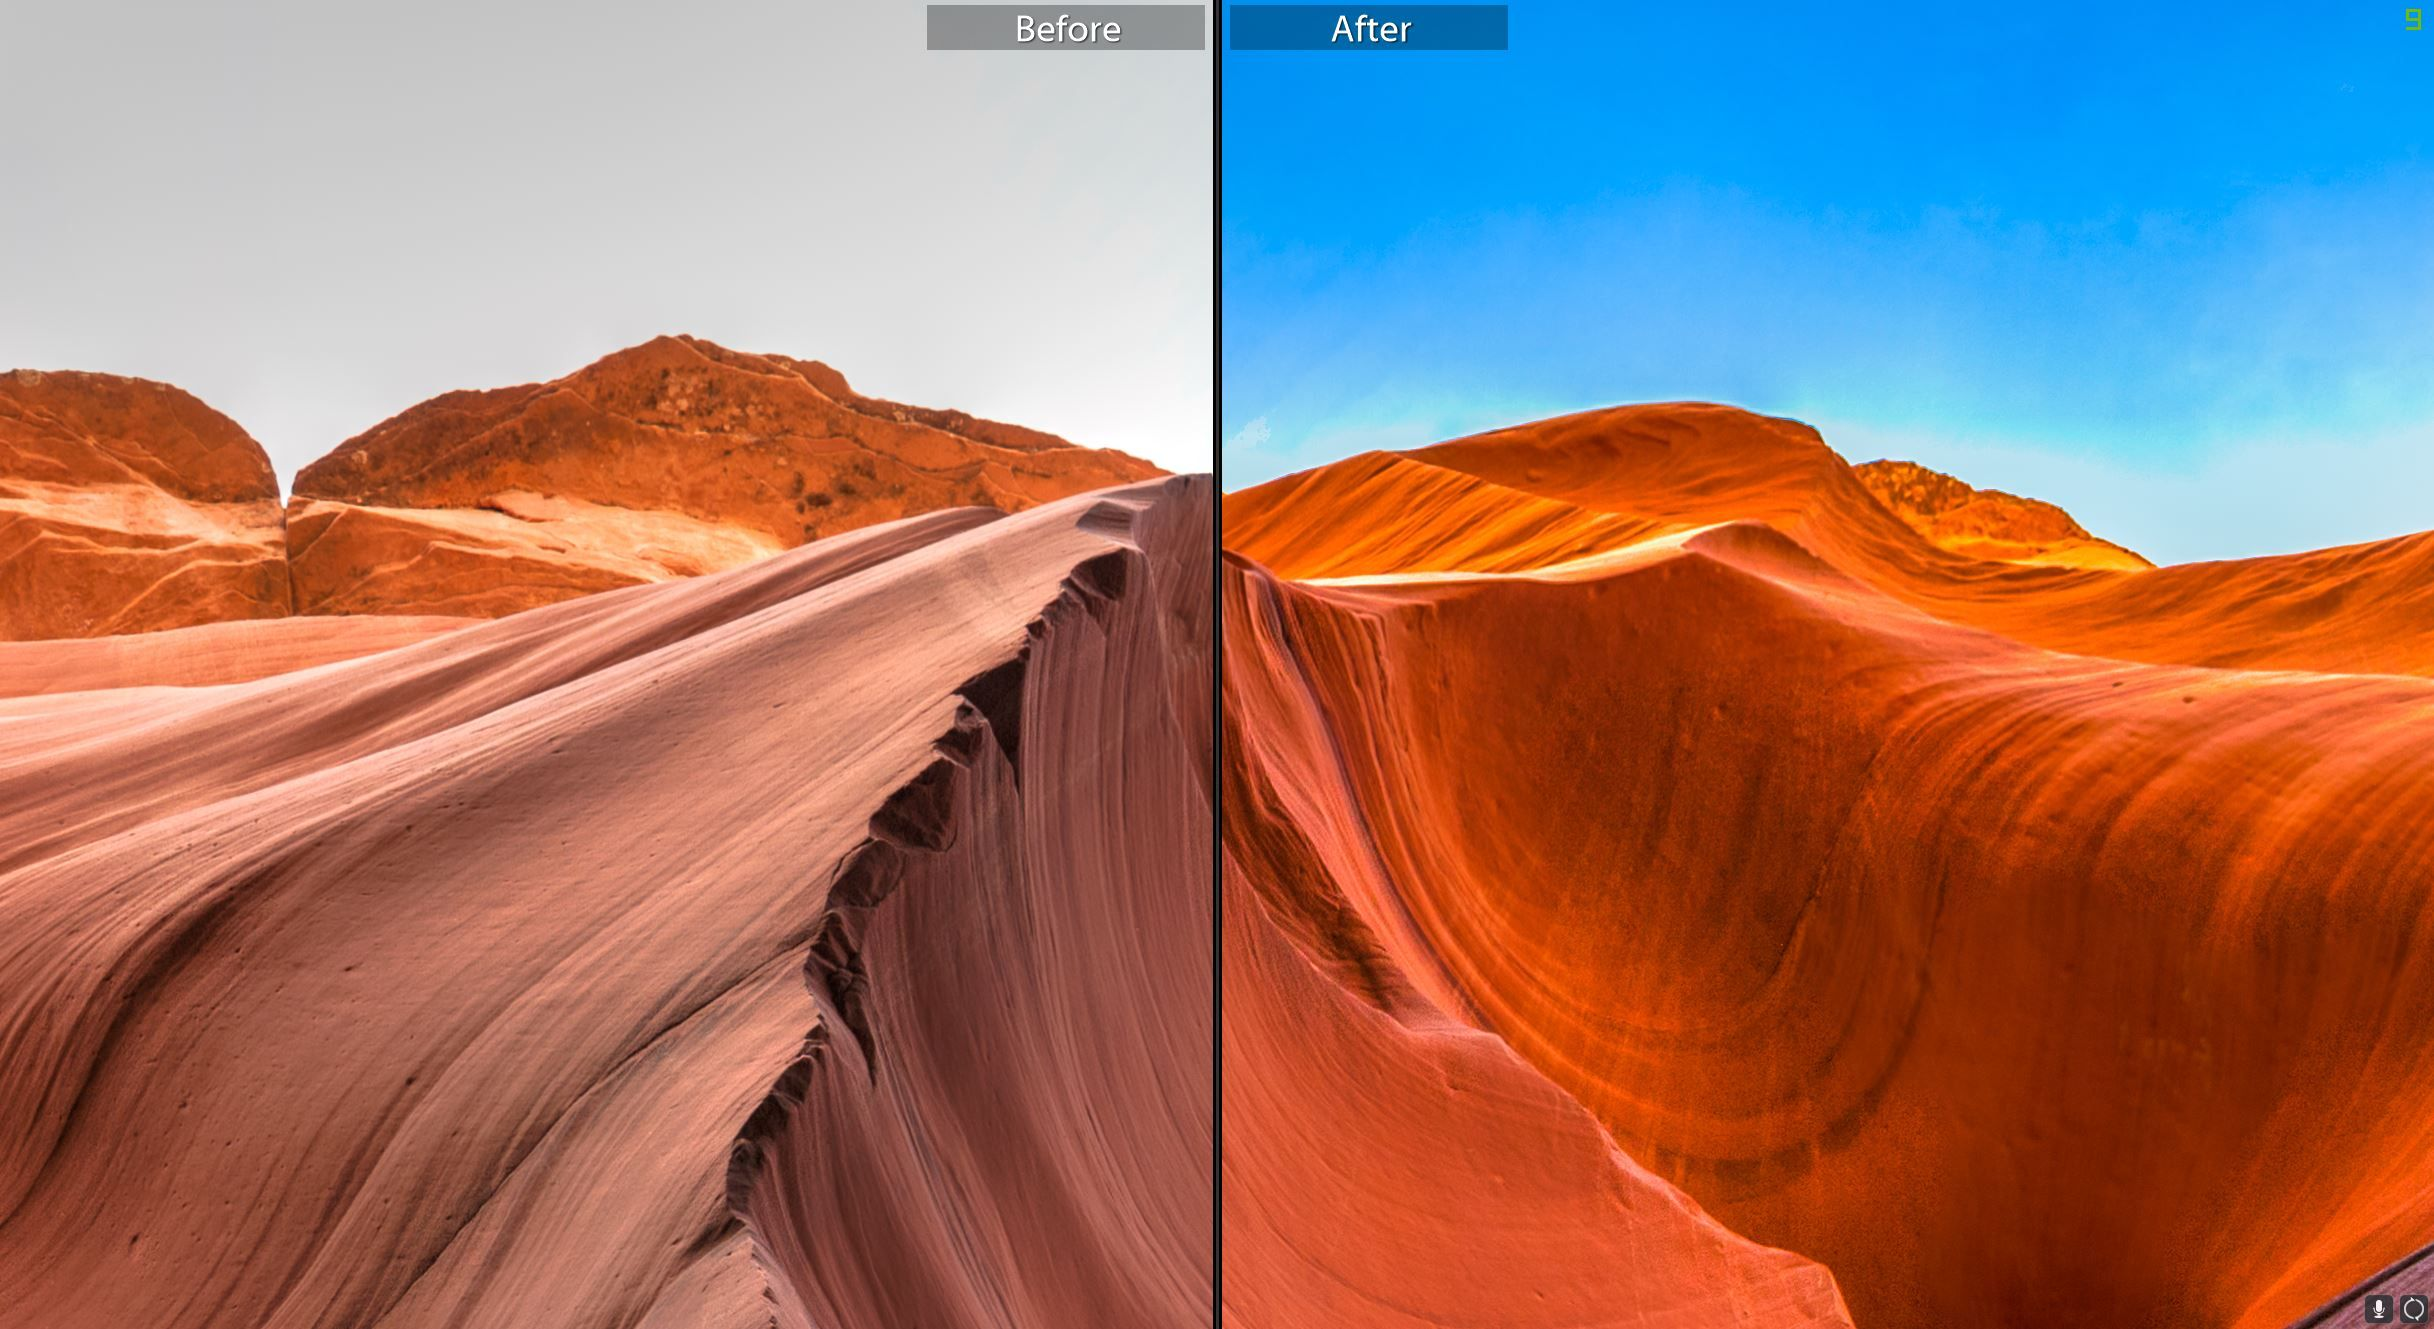 How to Fix Blown out Sky in Lightroom